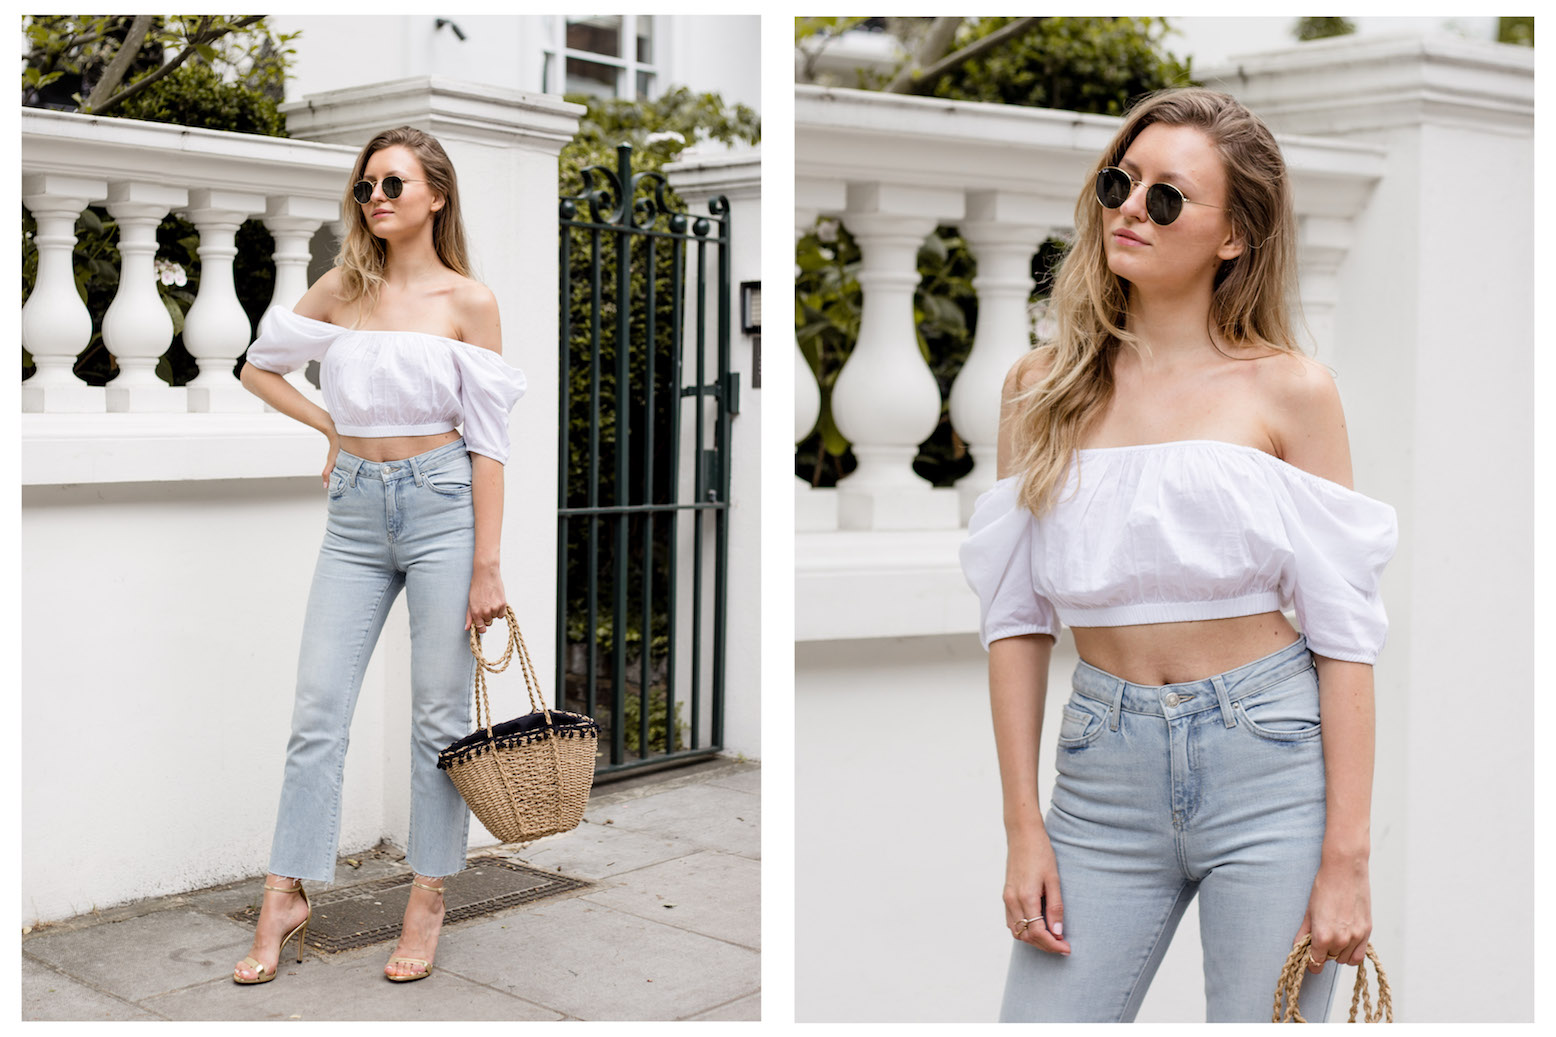 CROP TOP & RAW EDGE DENIM